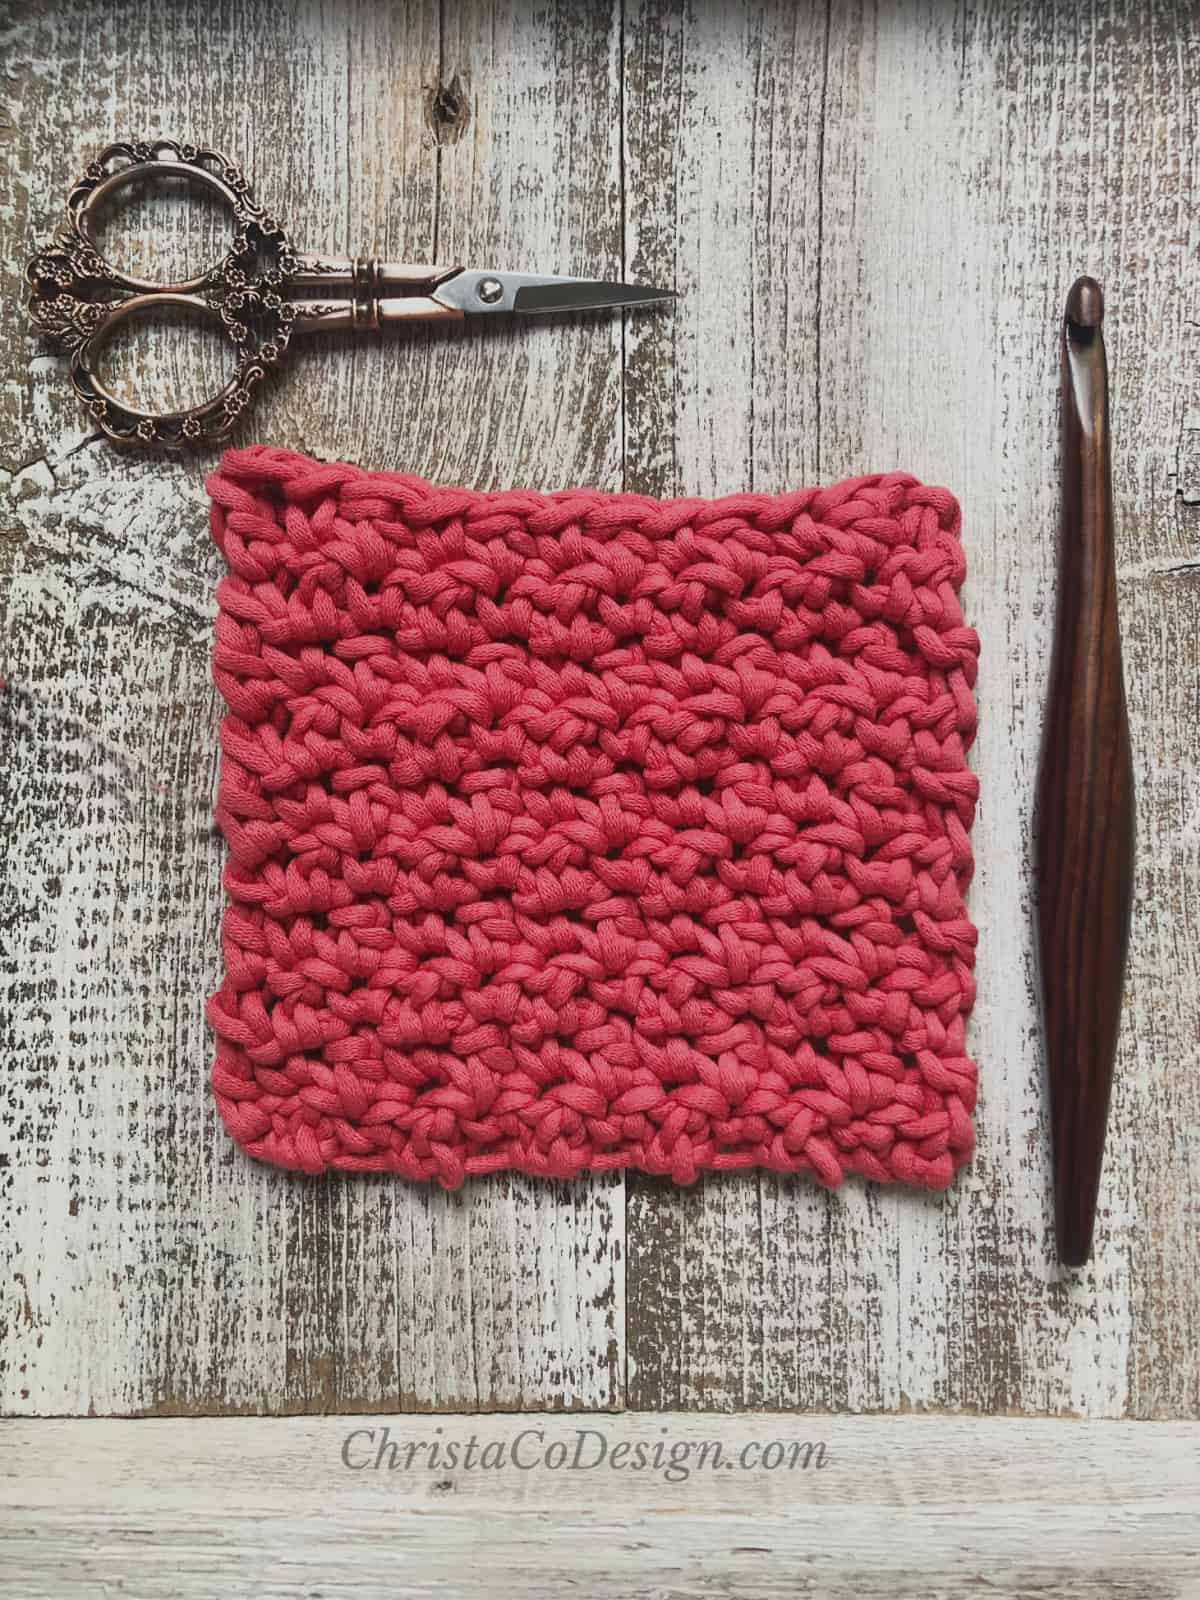 Scissors, swatch in red and hook.